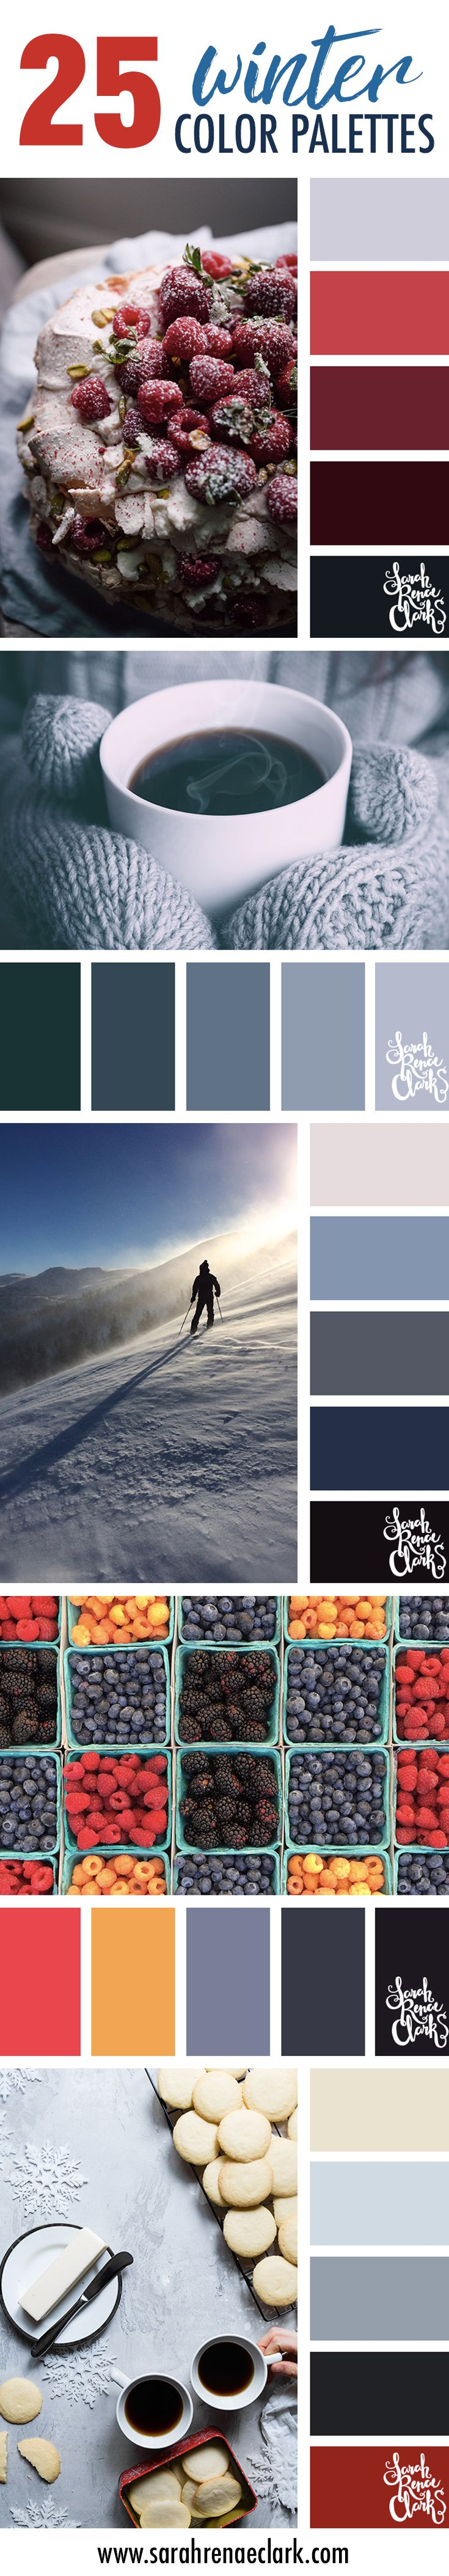 25 Winter Color Schemes // Click for more winter color combinations, mood boards and seasonal color palettes at http://sarahrenaeclark.com #color #colorscheme #colorinspiration